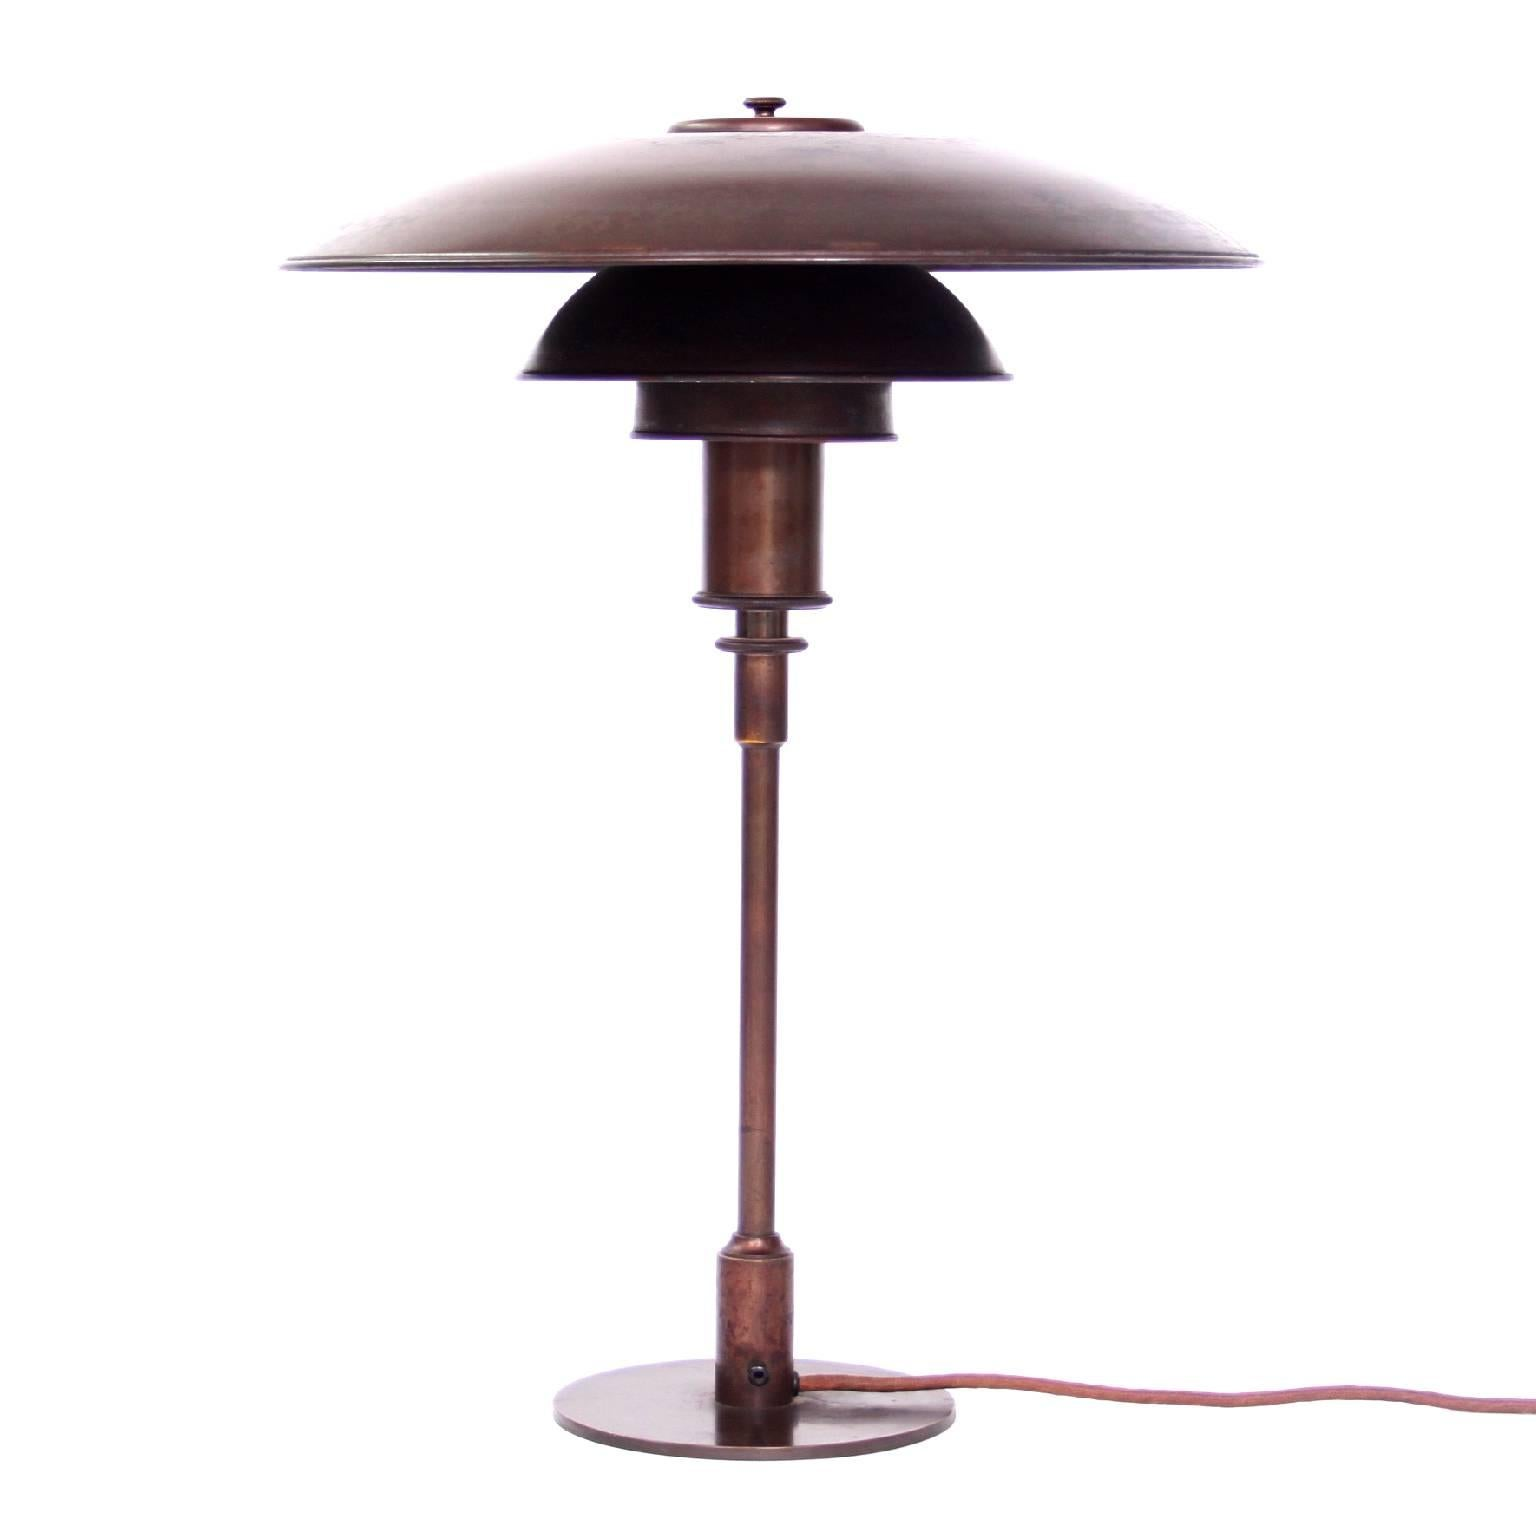 Early Poul Henningsen Copper Table Lamp, 1930s